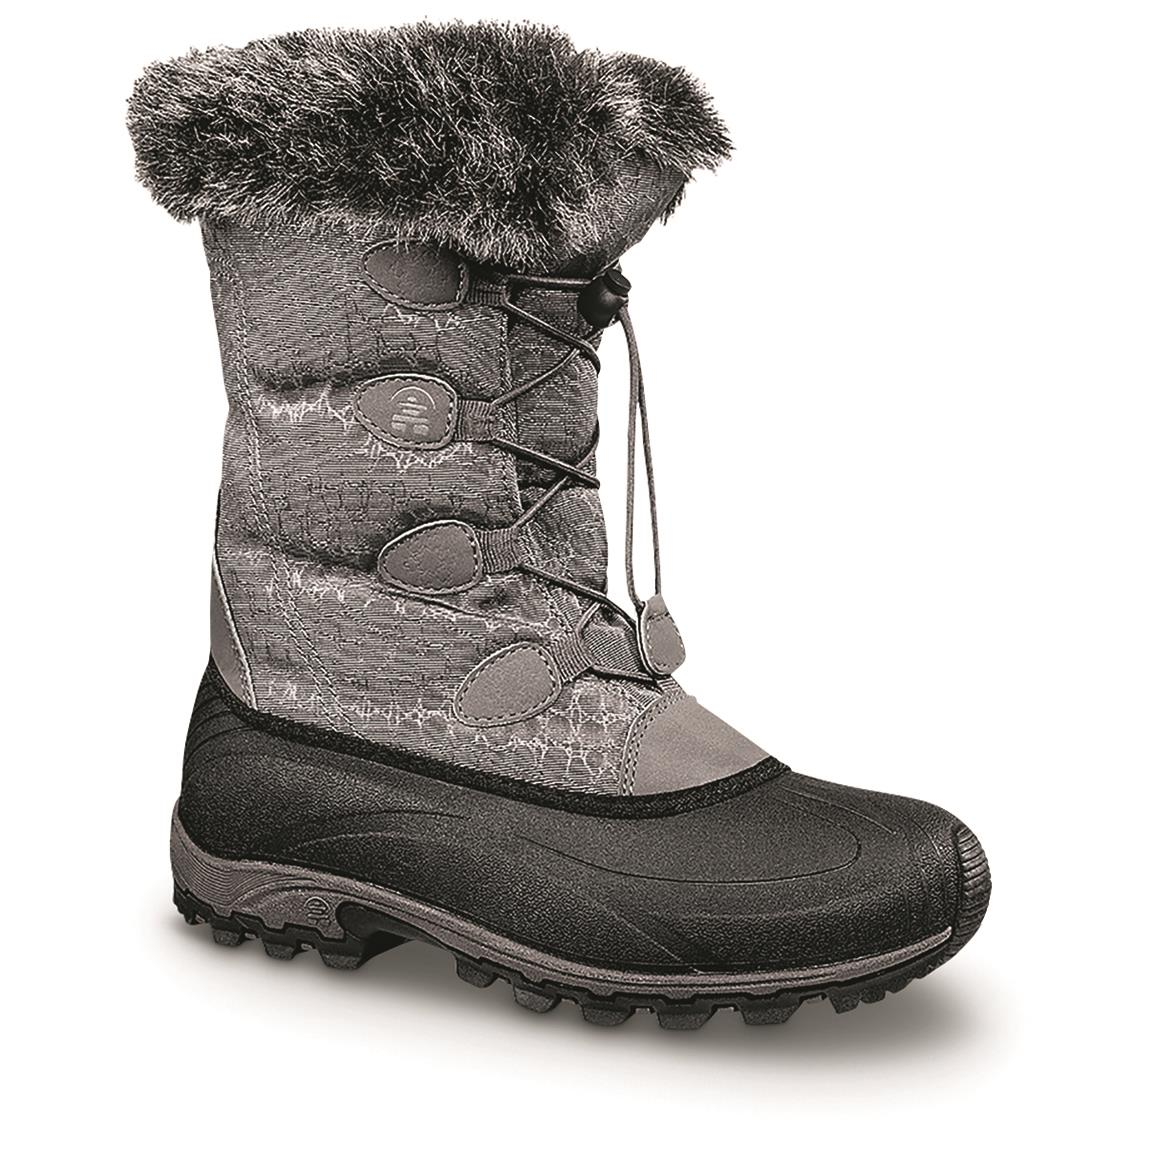 Model Winter Snow Boots For Women  Boot Yc